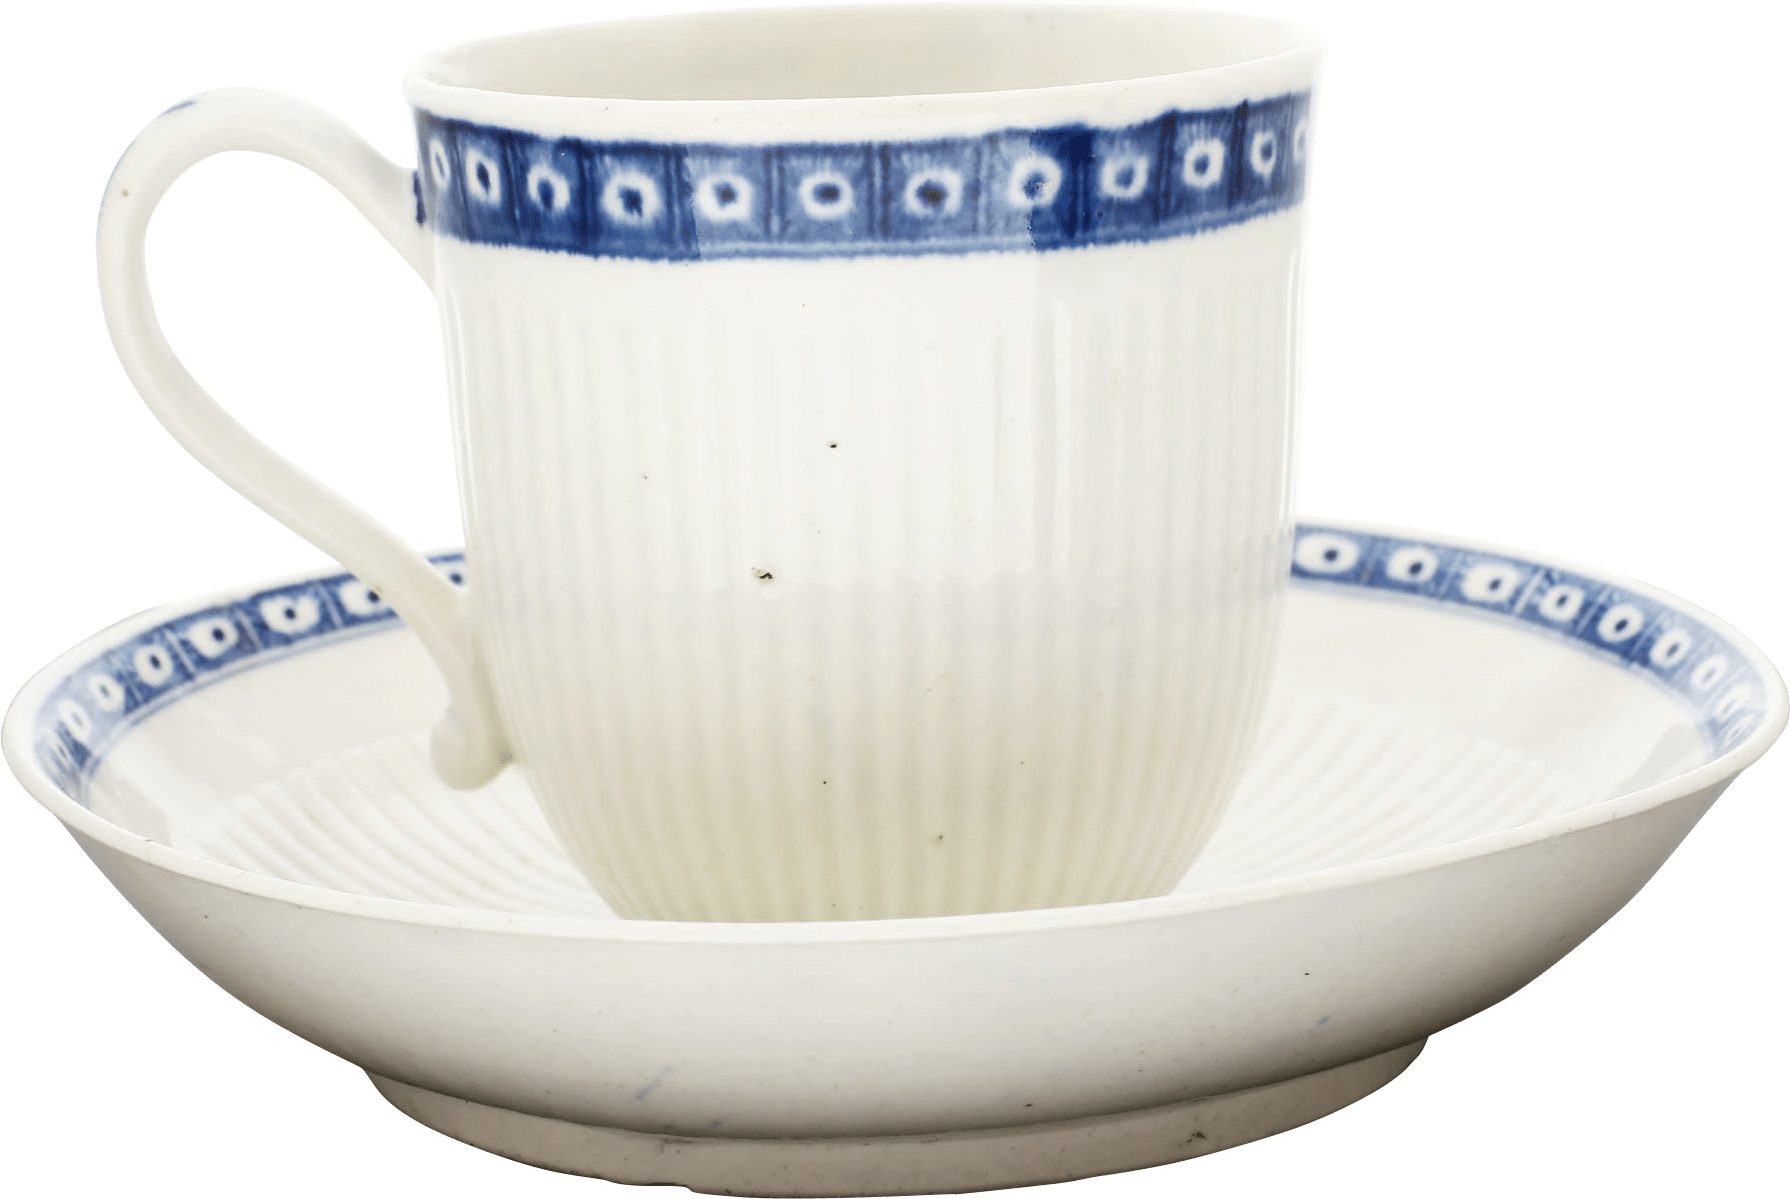 WORCESTER PORCELAIN EYE BORDER RIBBED COFFEE CUP AND SAUCER C.1770